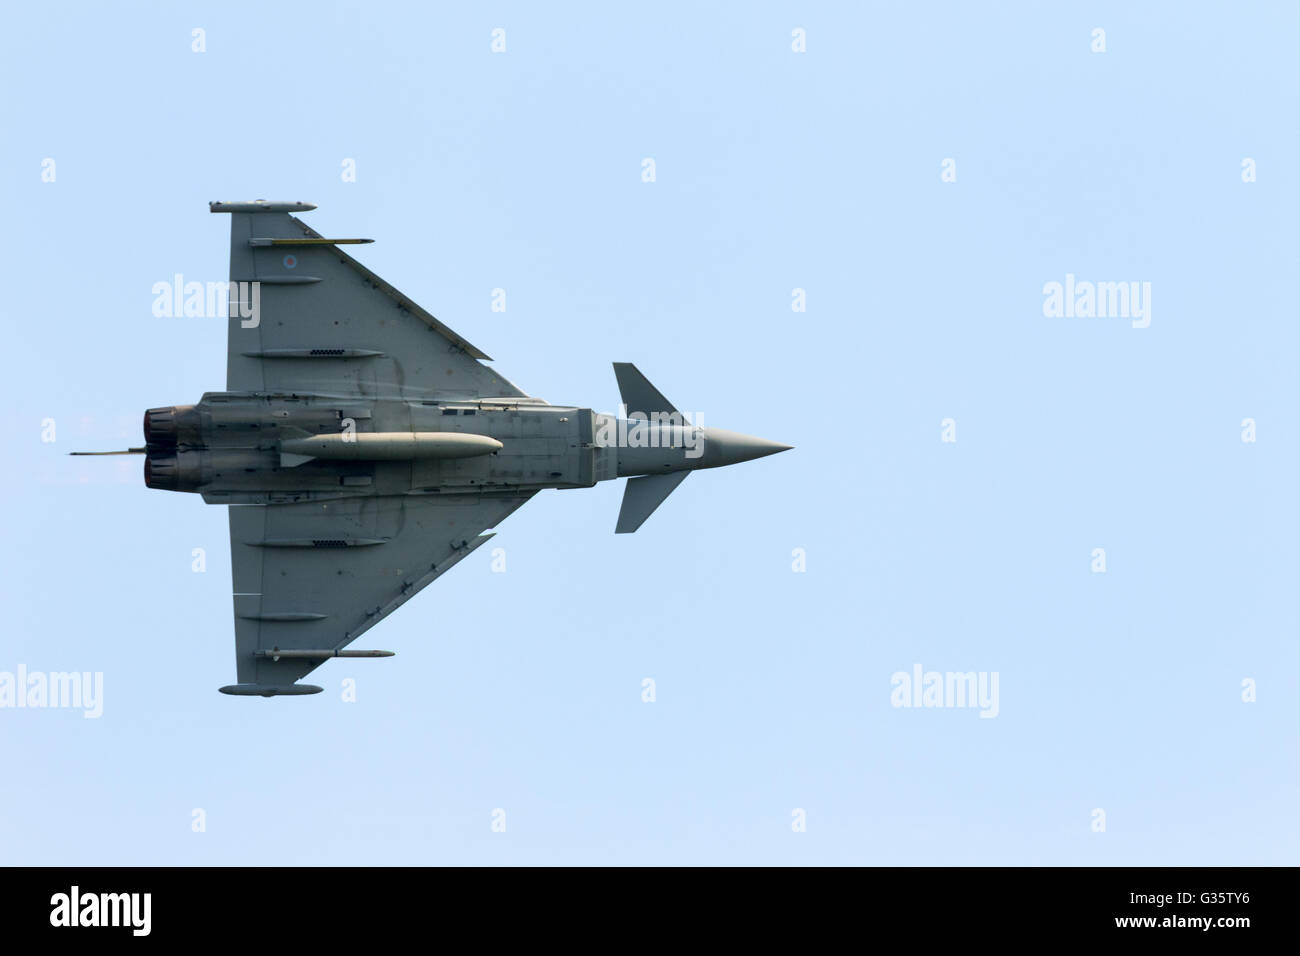 An RAF Eurofighter Typhoon FGR4 aircraft in flight, view from below, Duxford airport, Cambridge UK - Stock Image